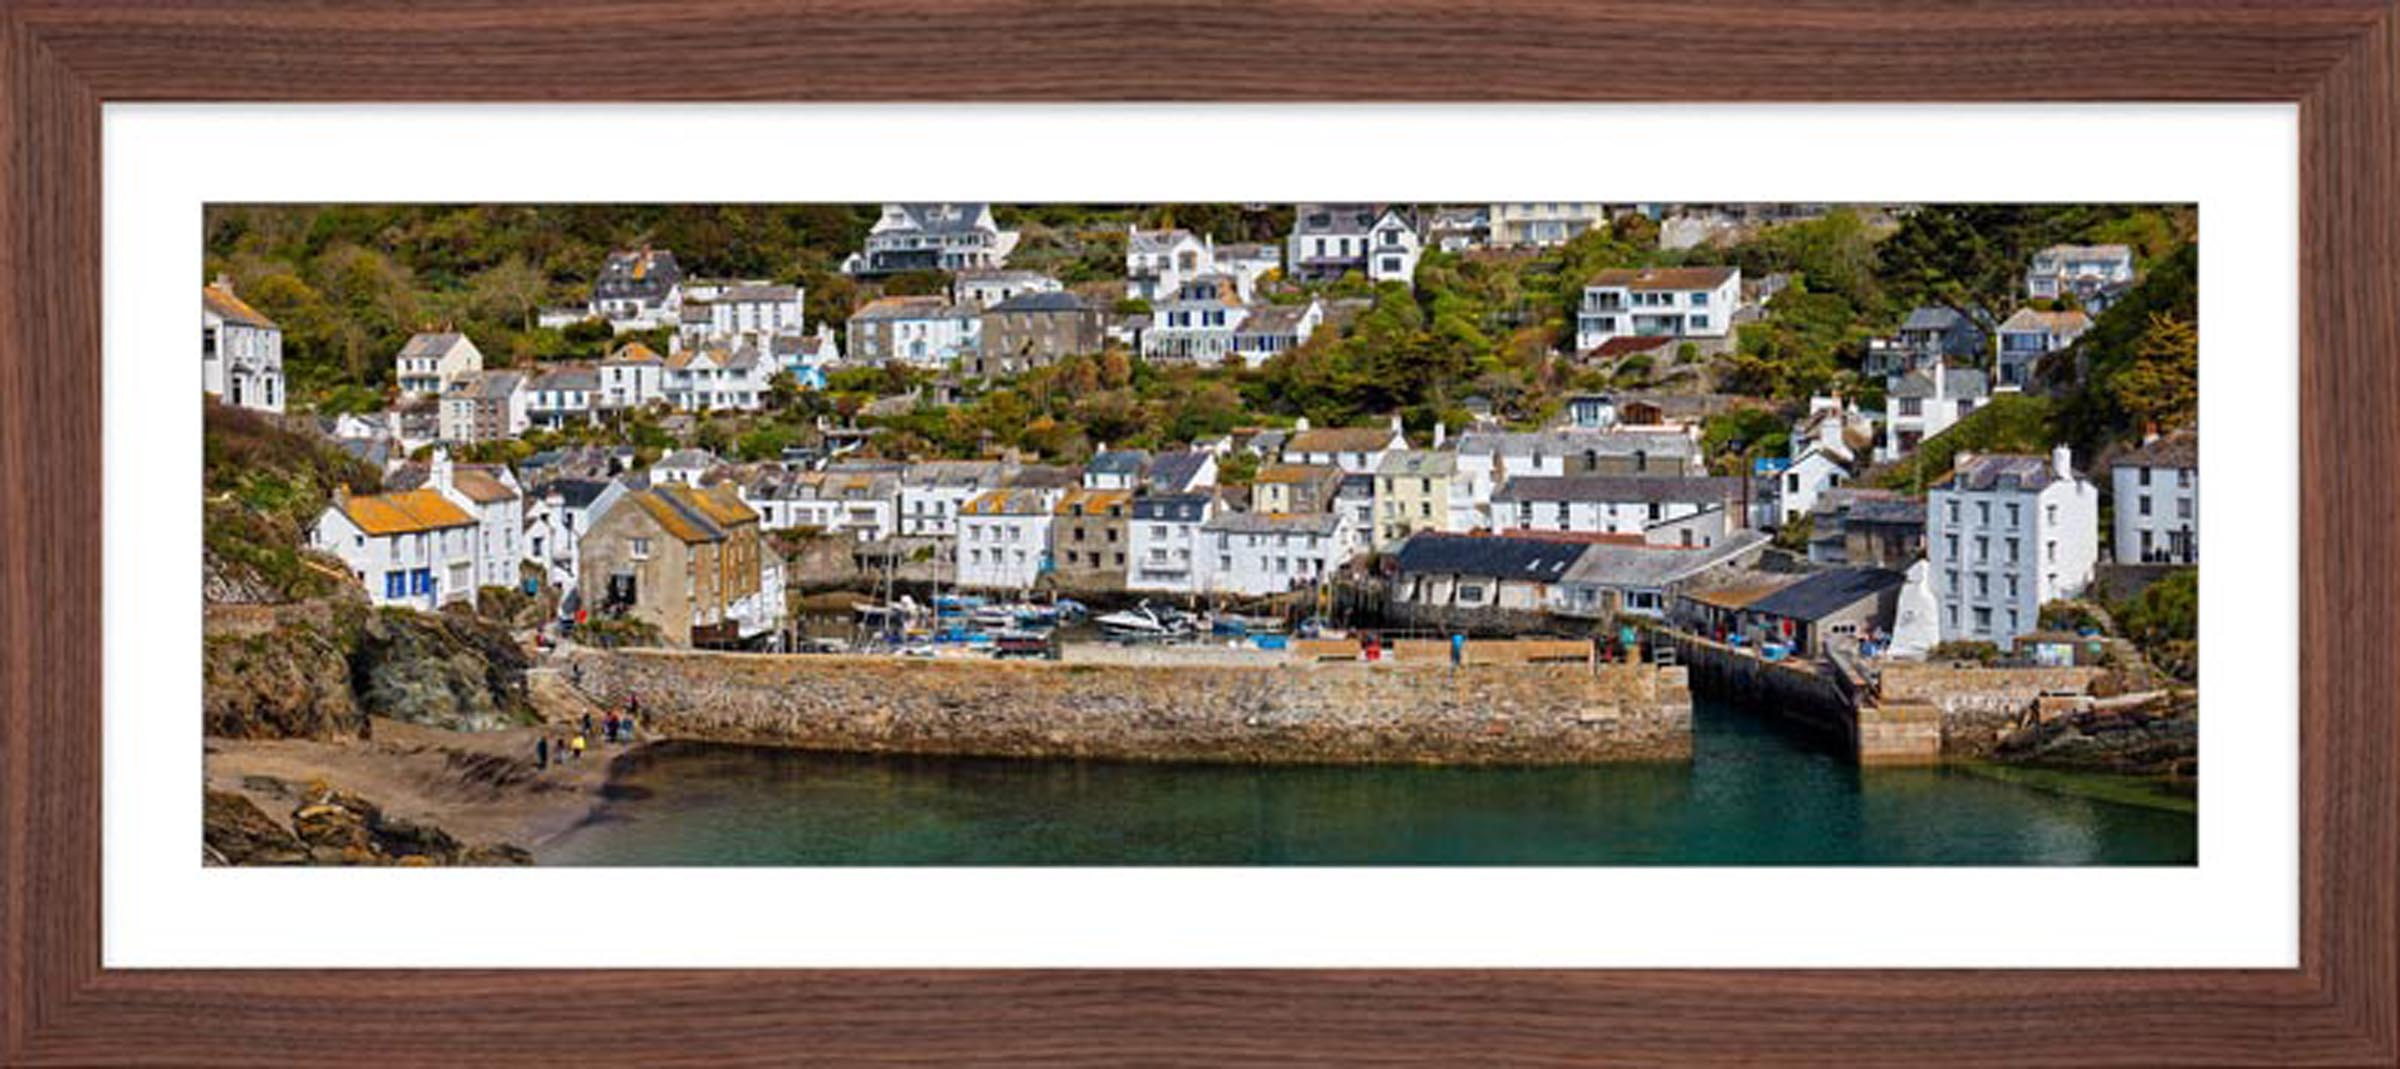 Polperro Harbour Wall - Framed Print with Mount